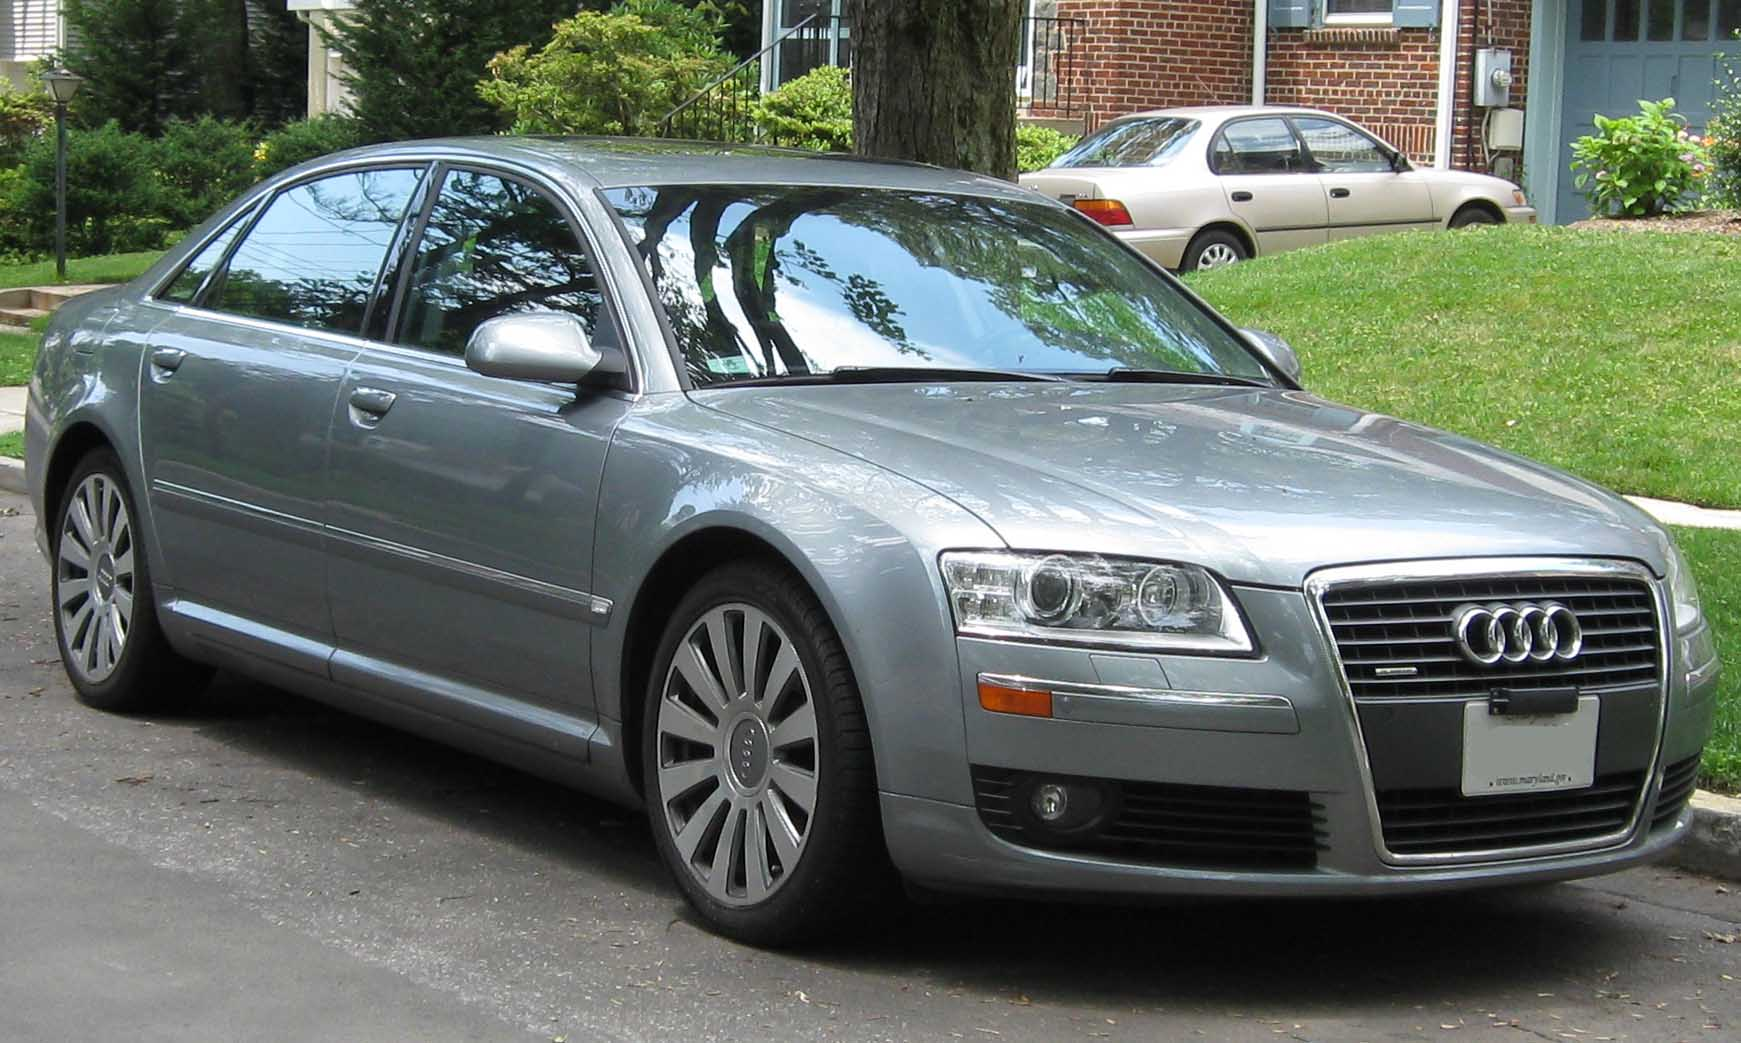 File 06 08 Audi A8 4 2 Jpg Wikimedia Commons